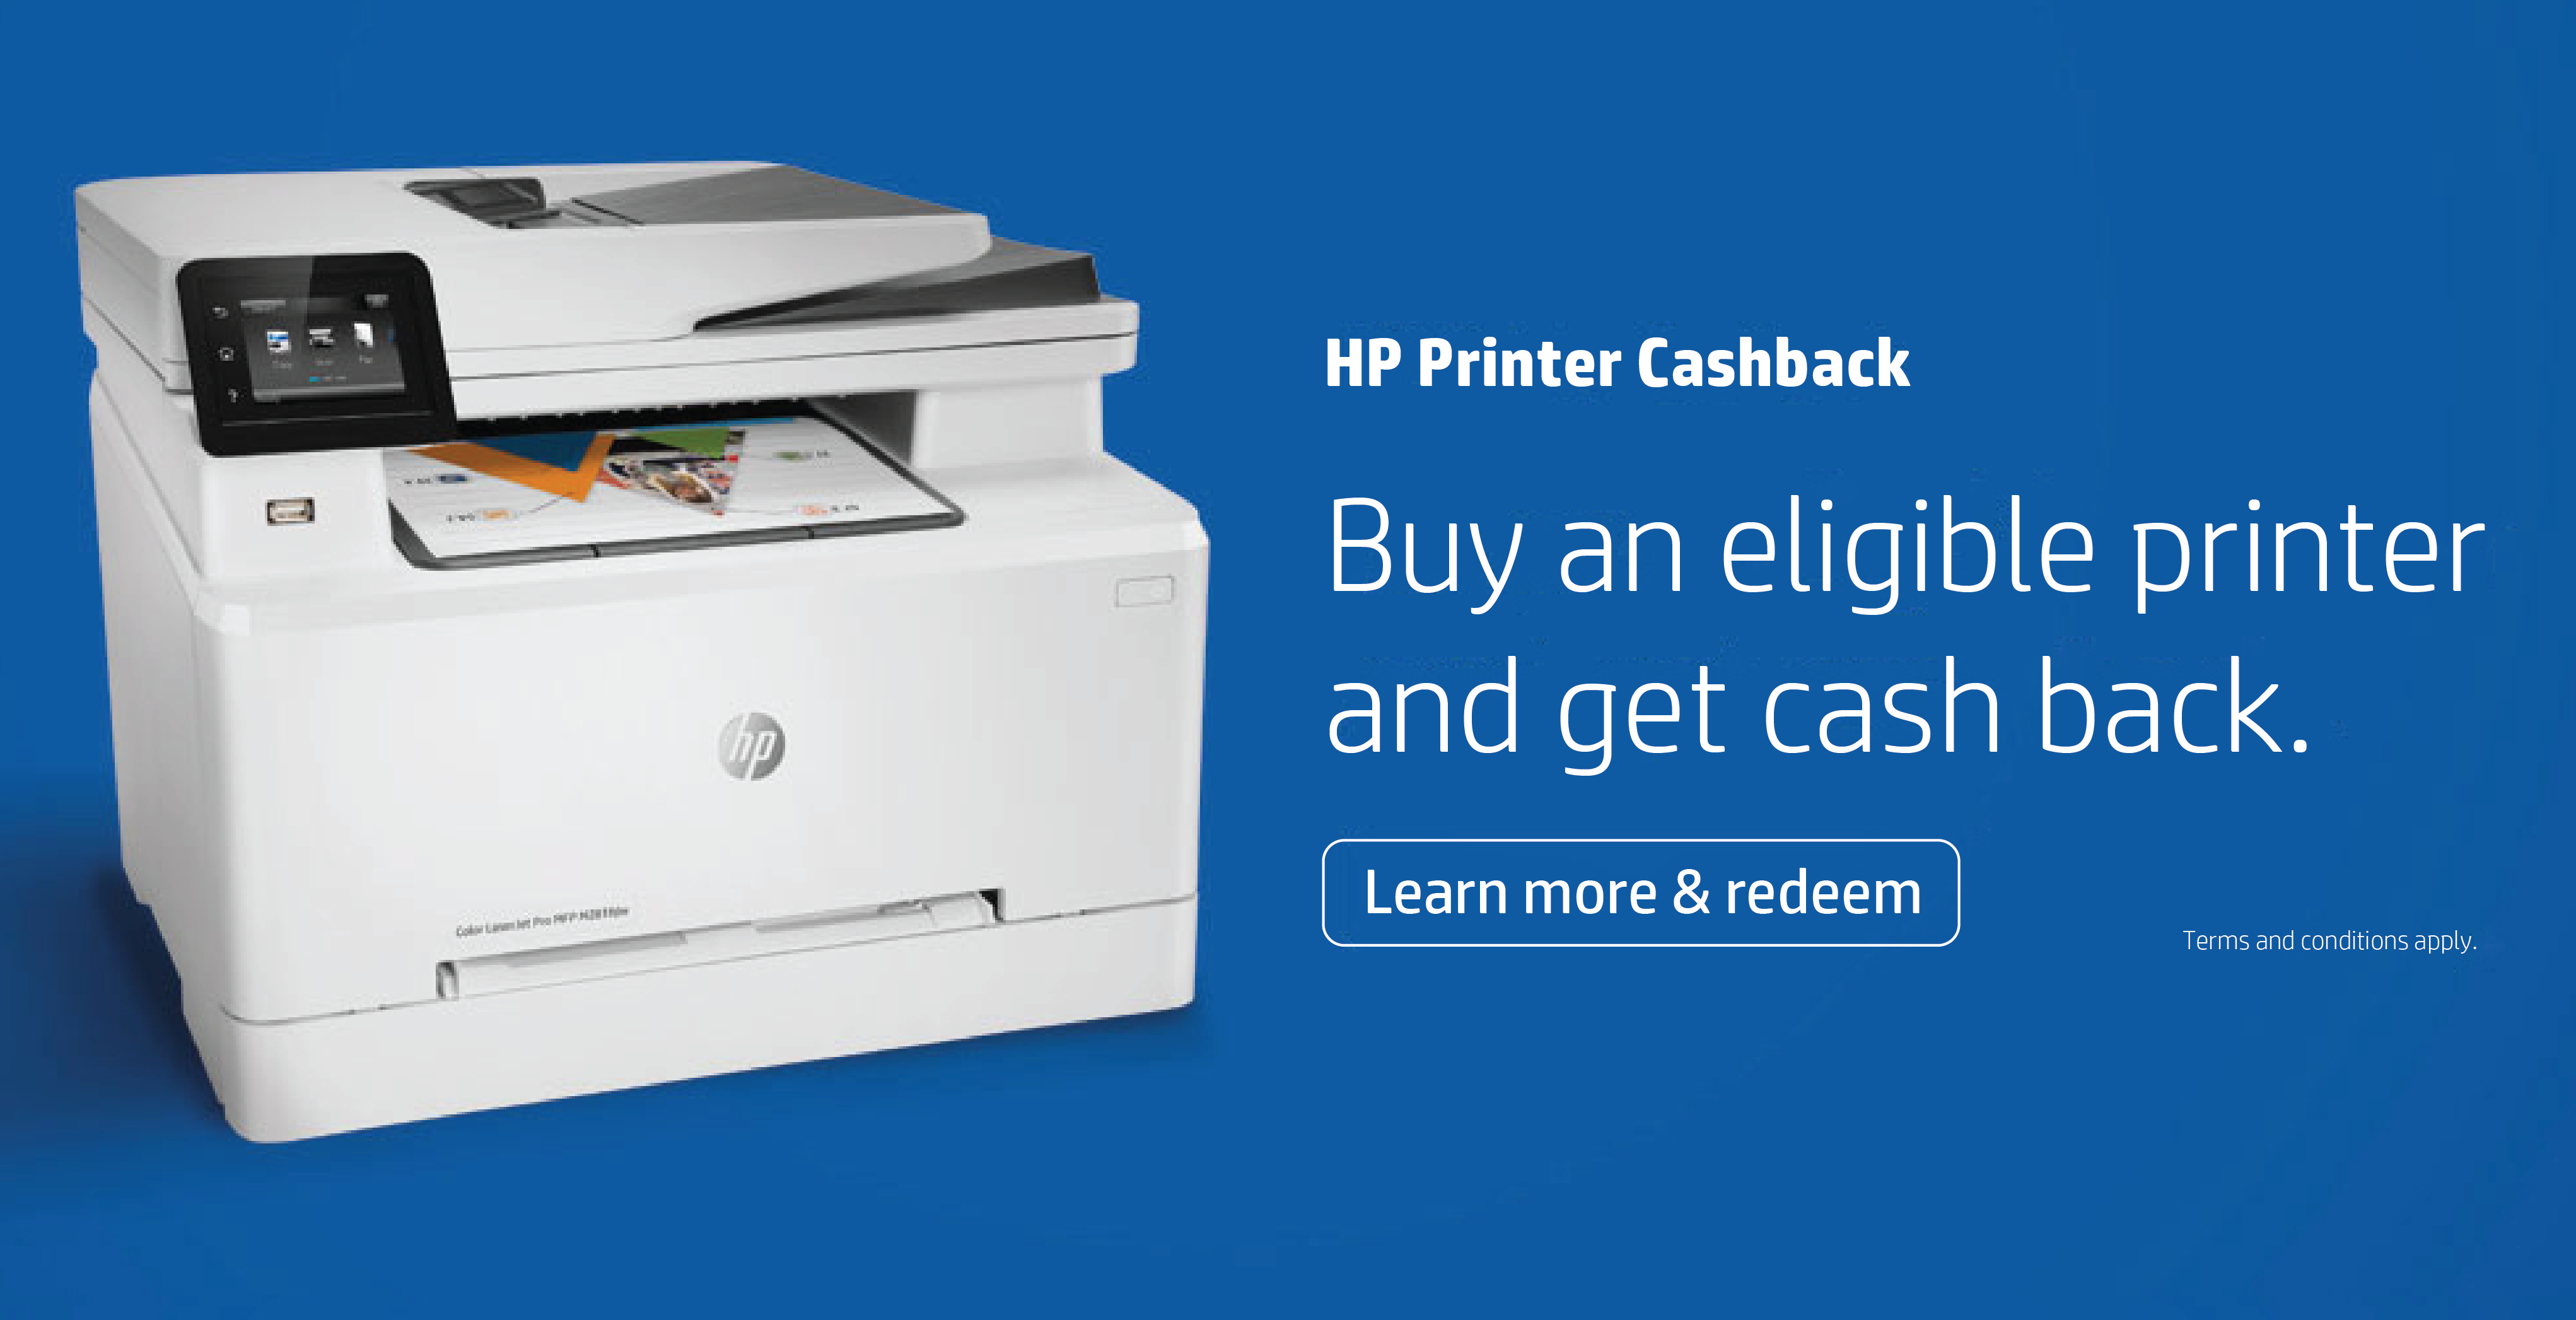 Buy an eligible HP printer and get cash back